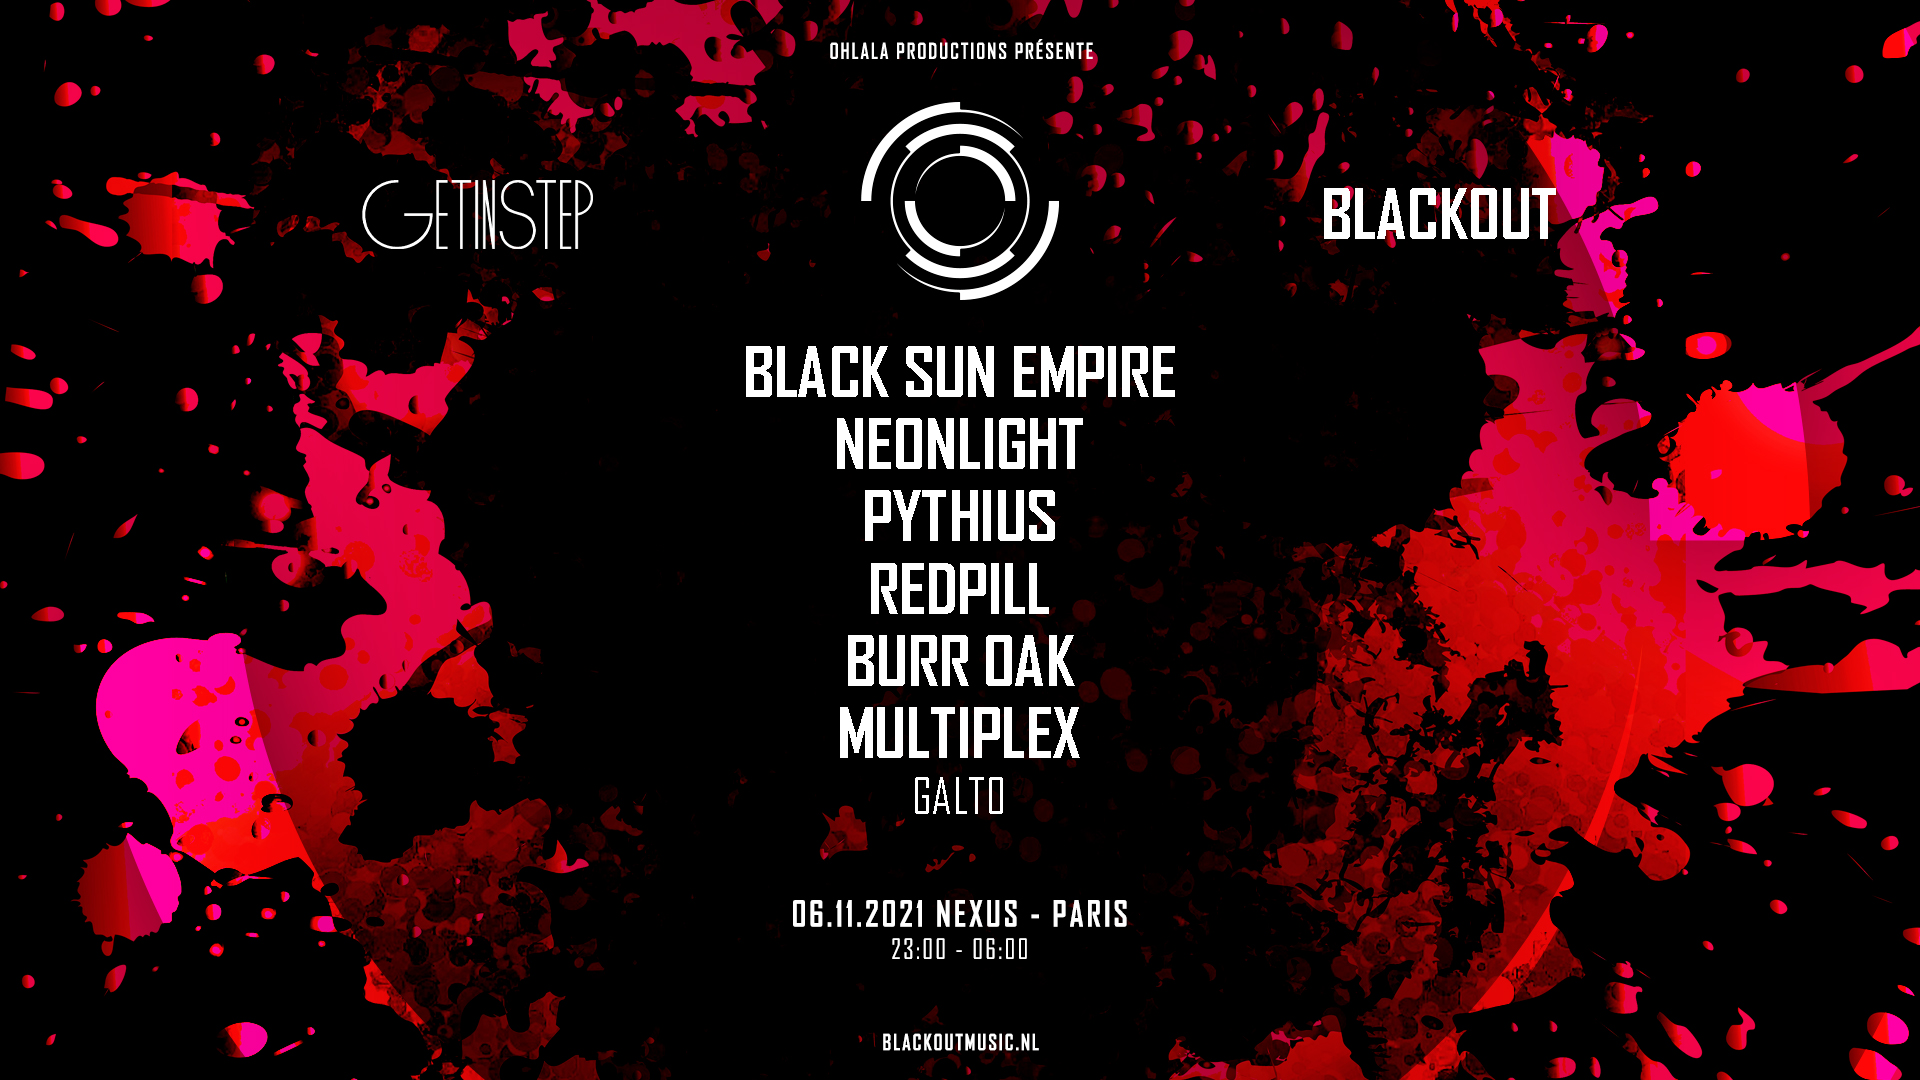 GET IN STEP x BLACKOUT w/ Black Sun Empire & More